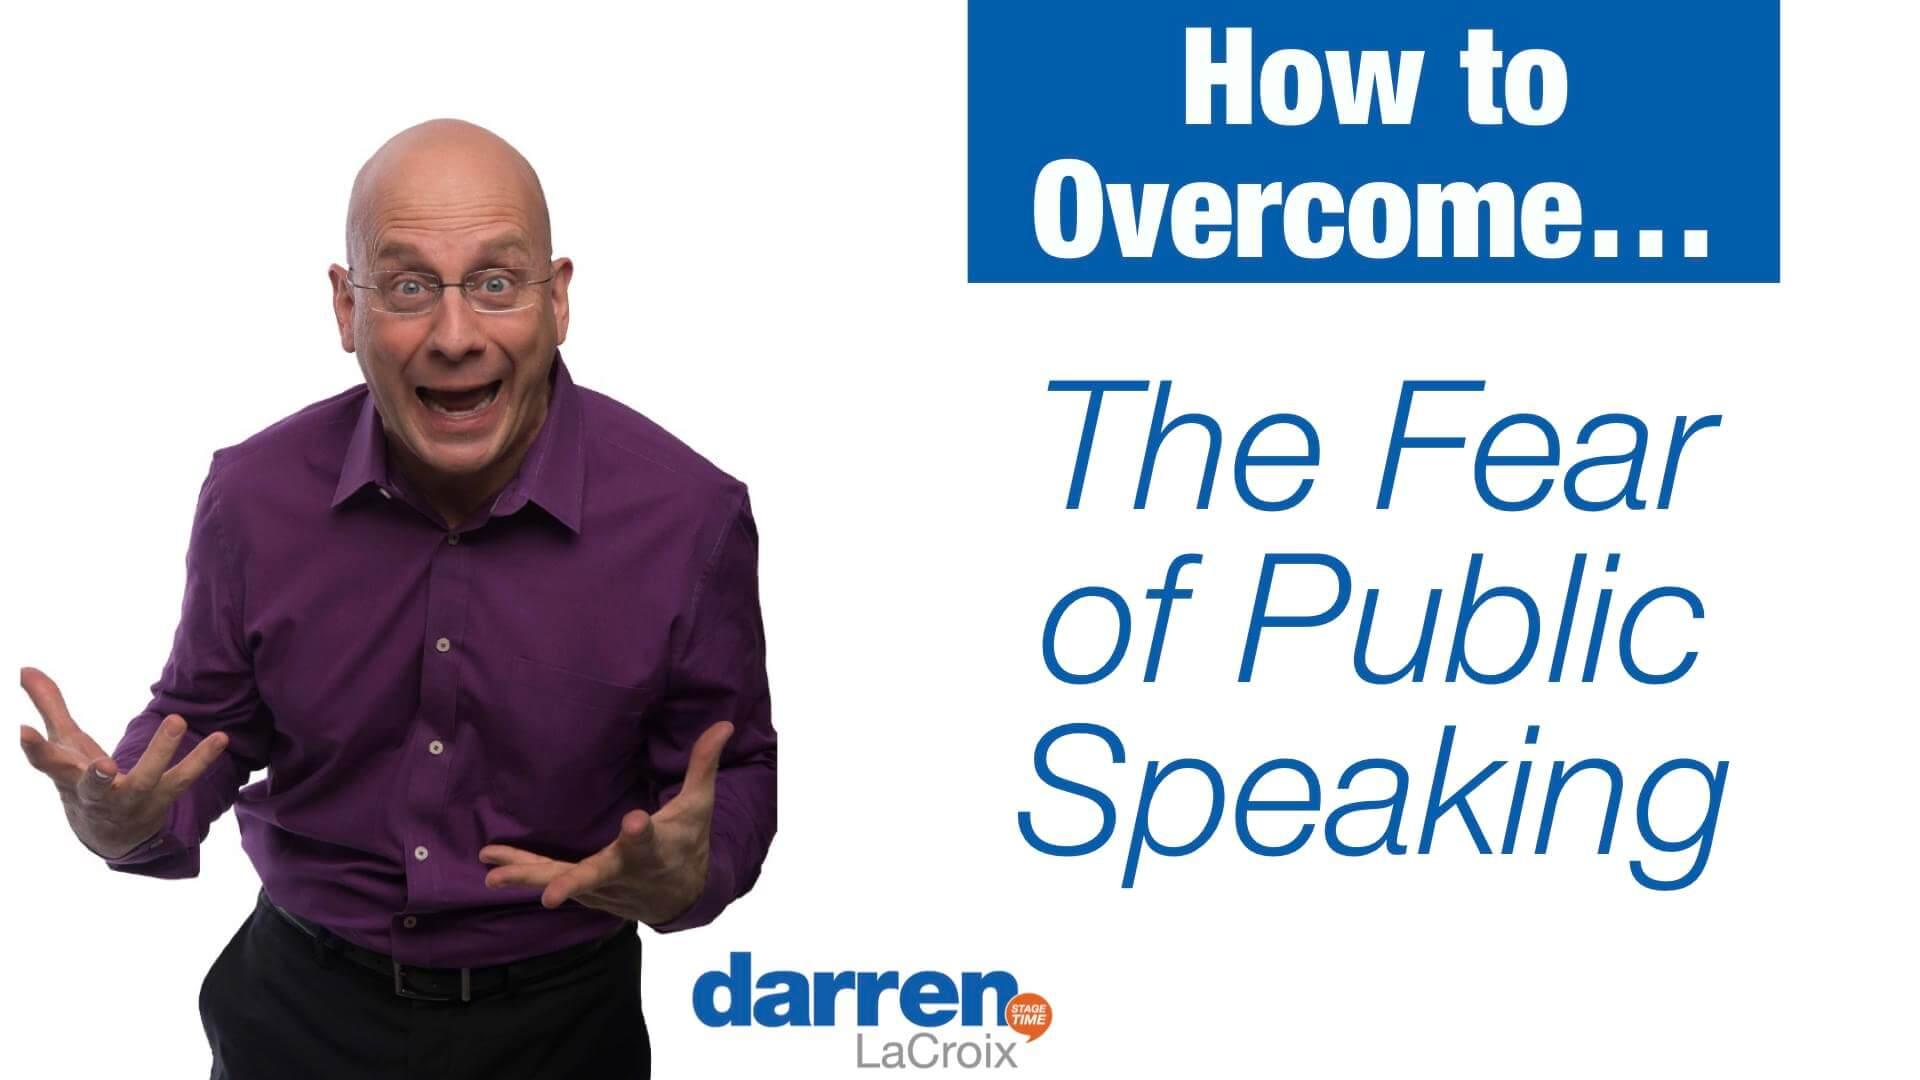 How to Overcome... The Fear of Public Speaking